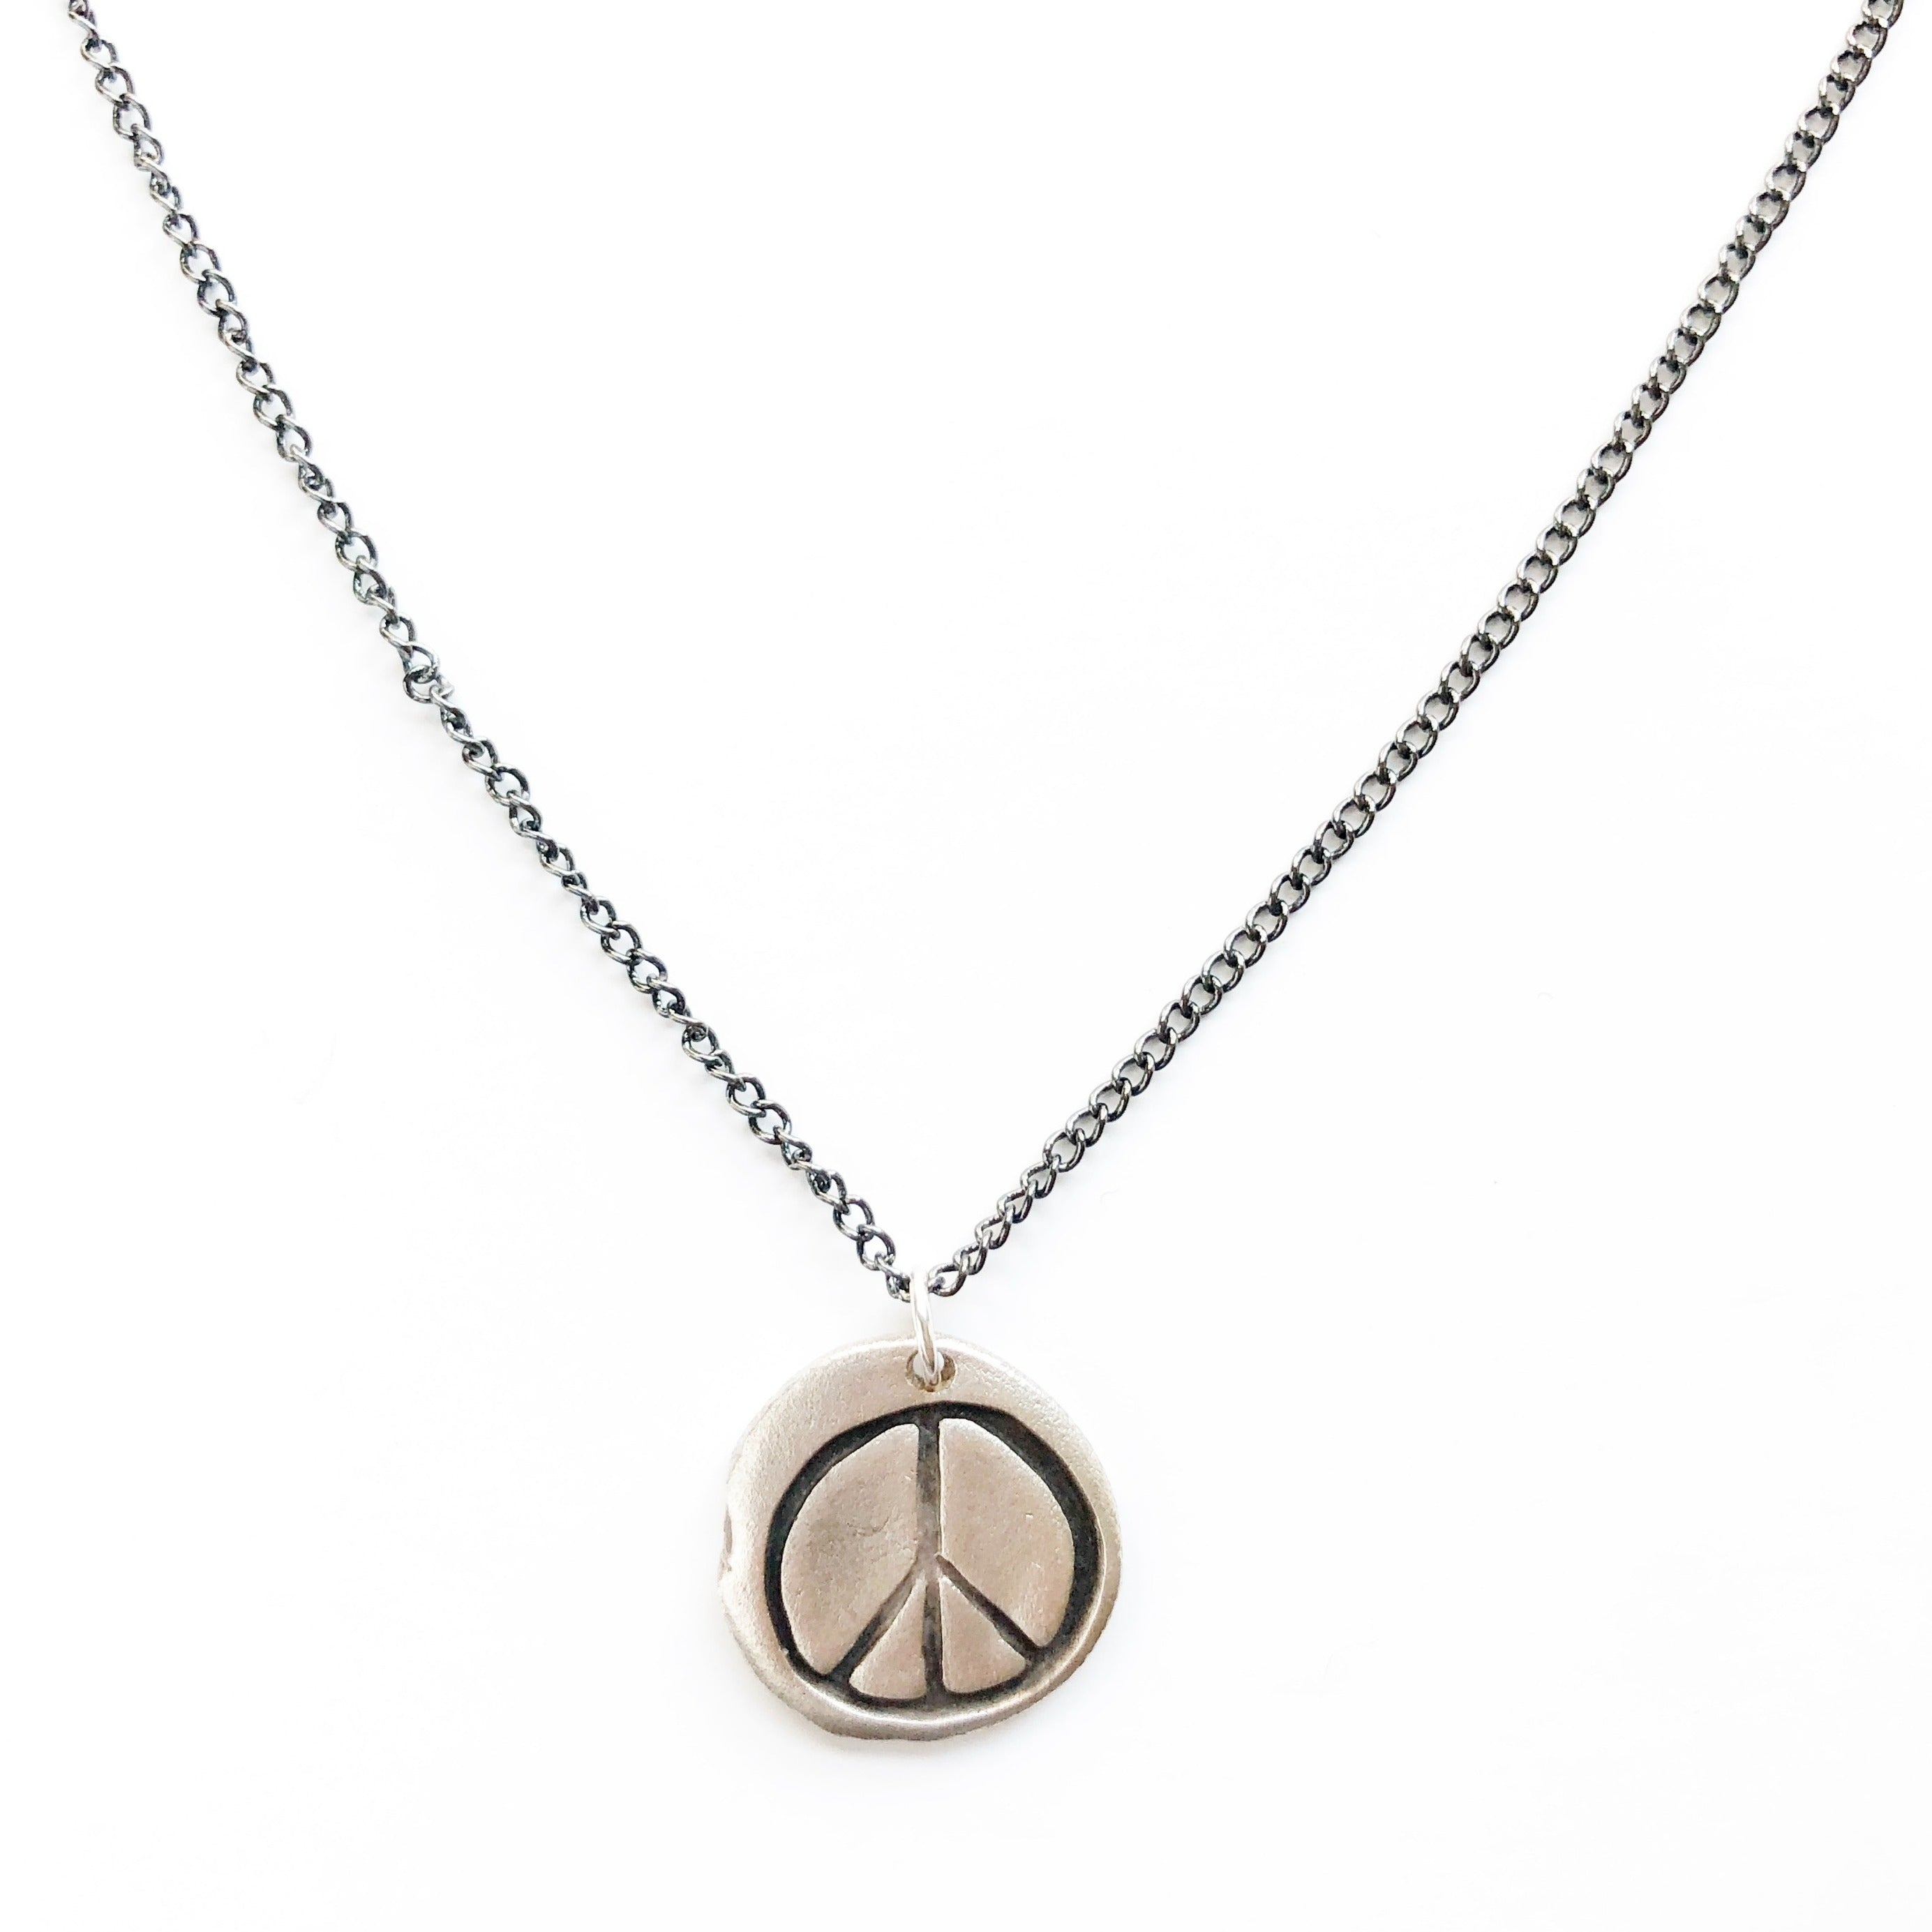 One-of-a-kind-silver-peace-sign-charm-necklace-MAS-Designs-Jewelry